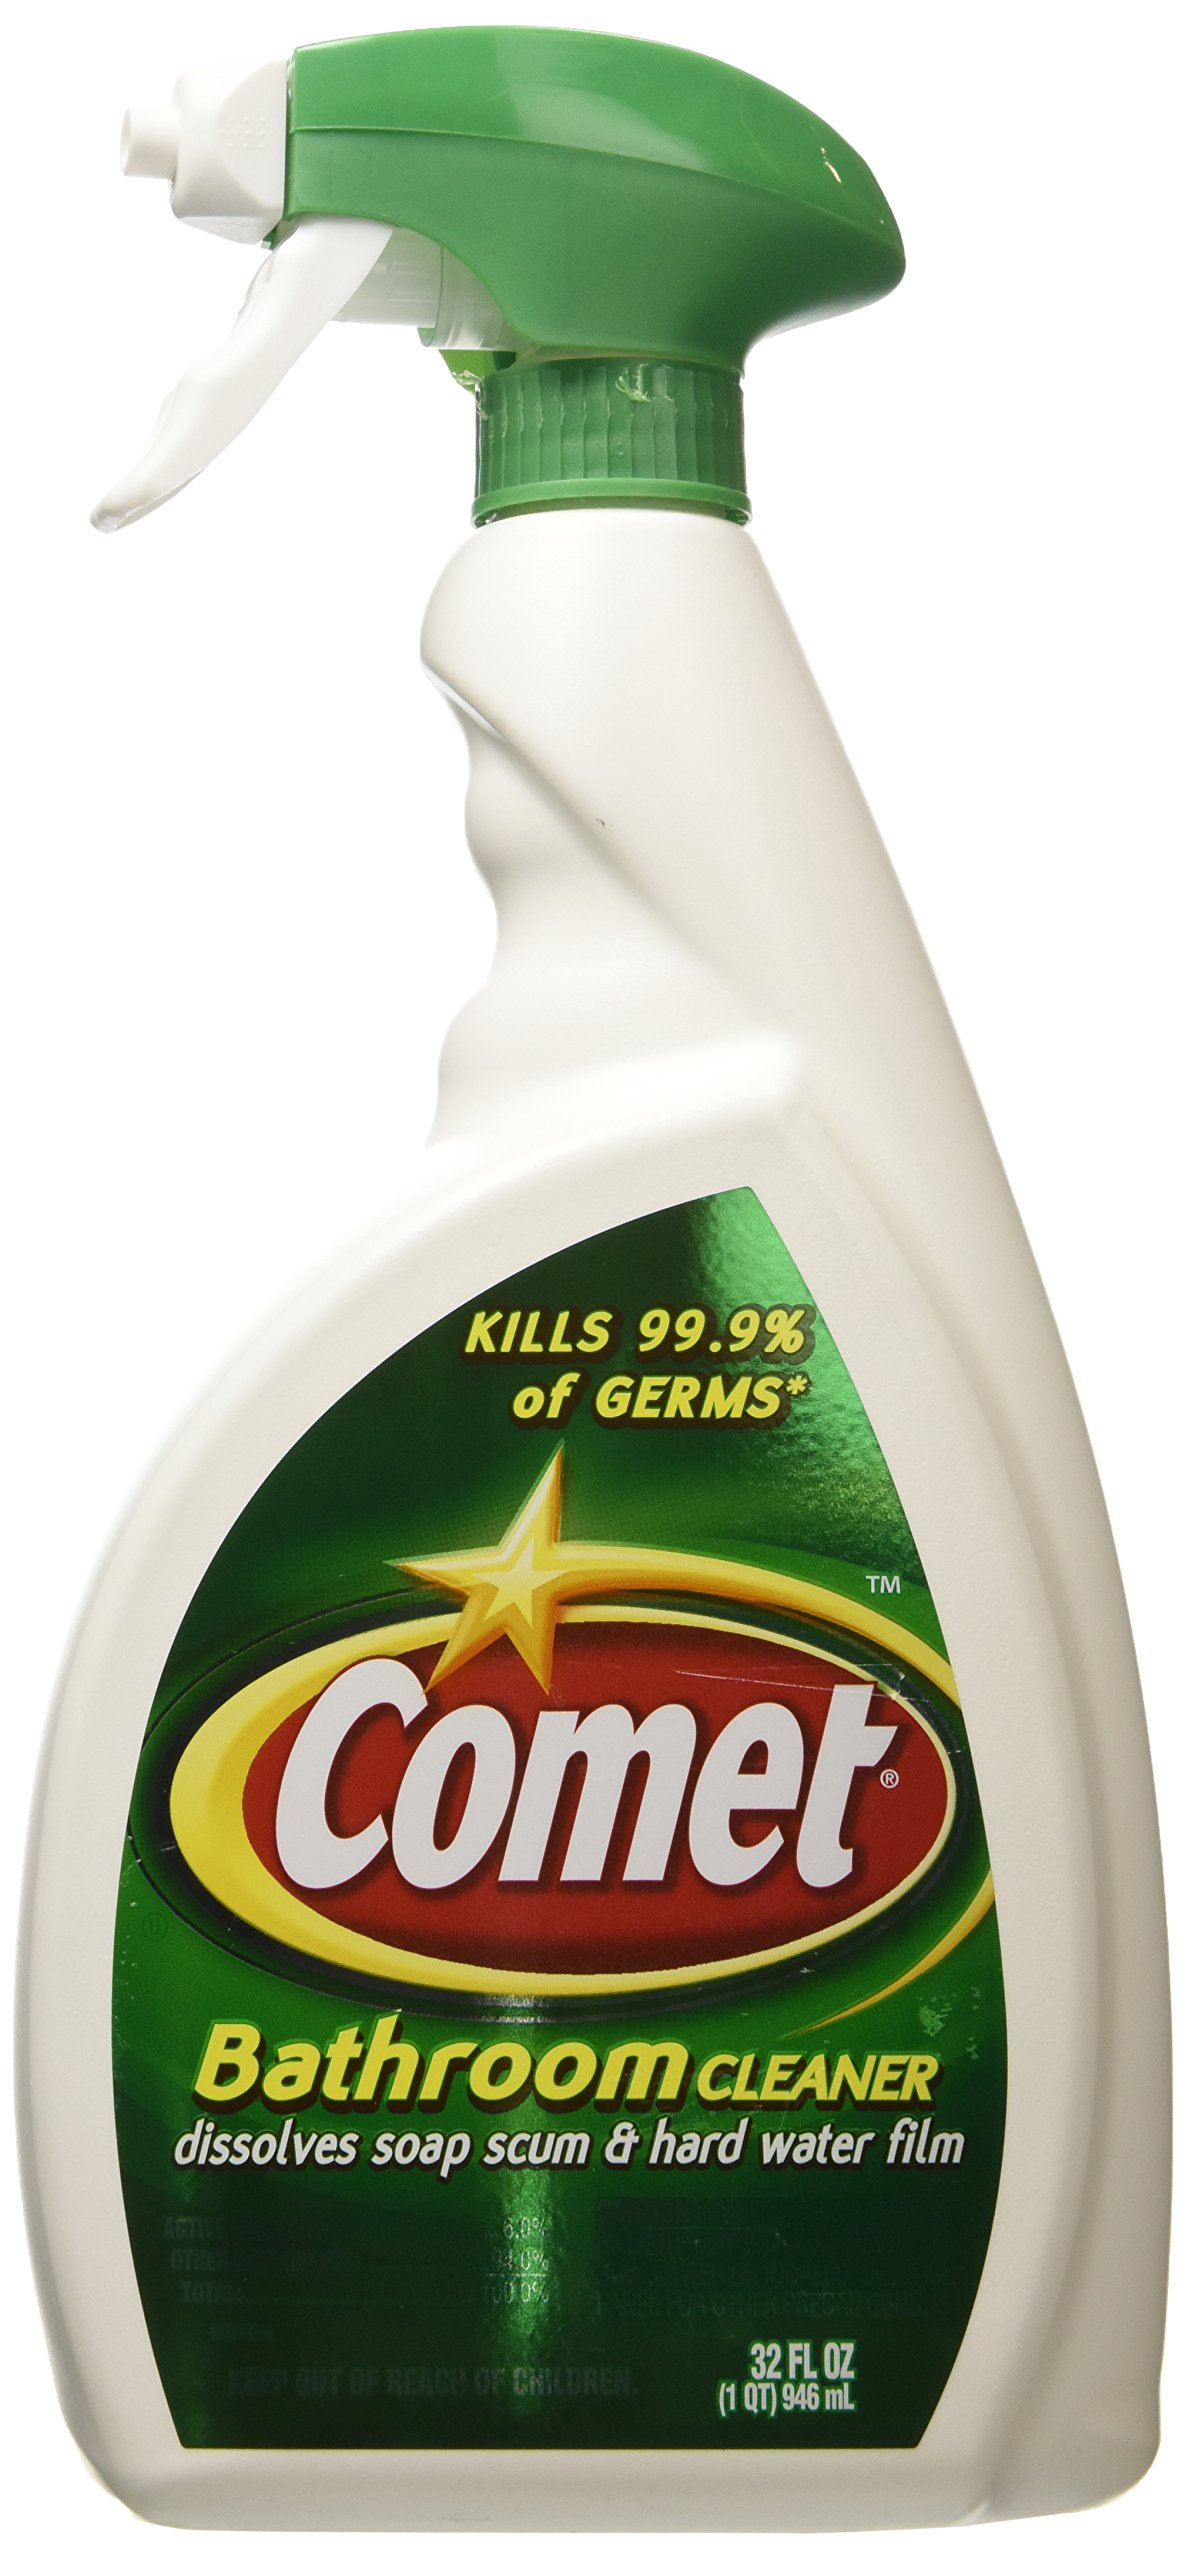 COMET BATHROOM CLEANER DISINFECTANT LIQUID 32OZ